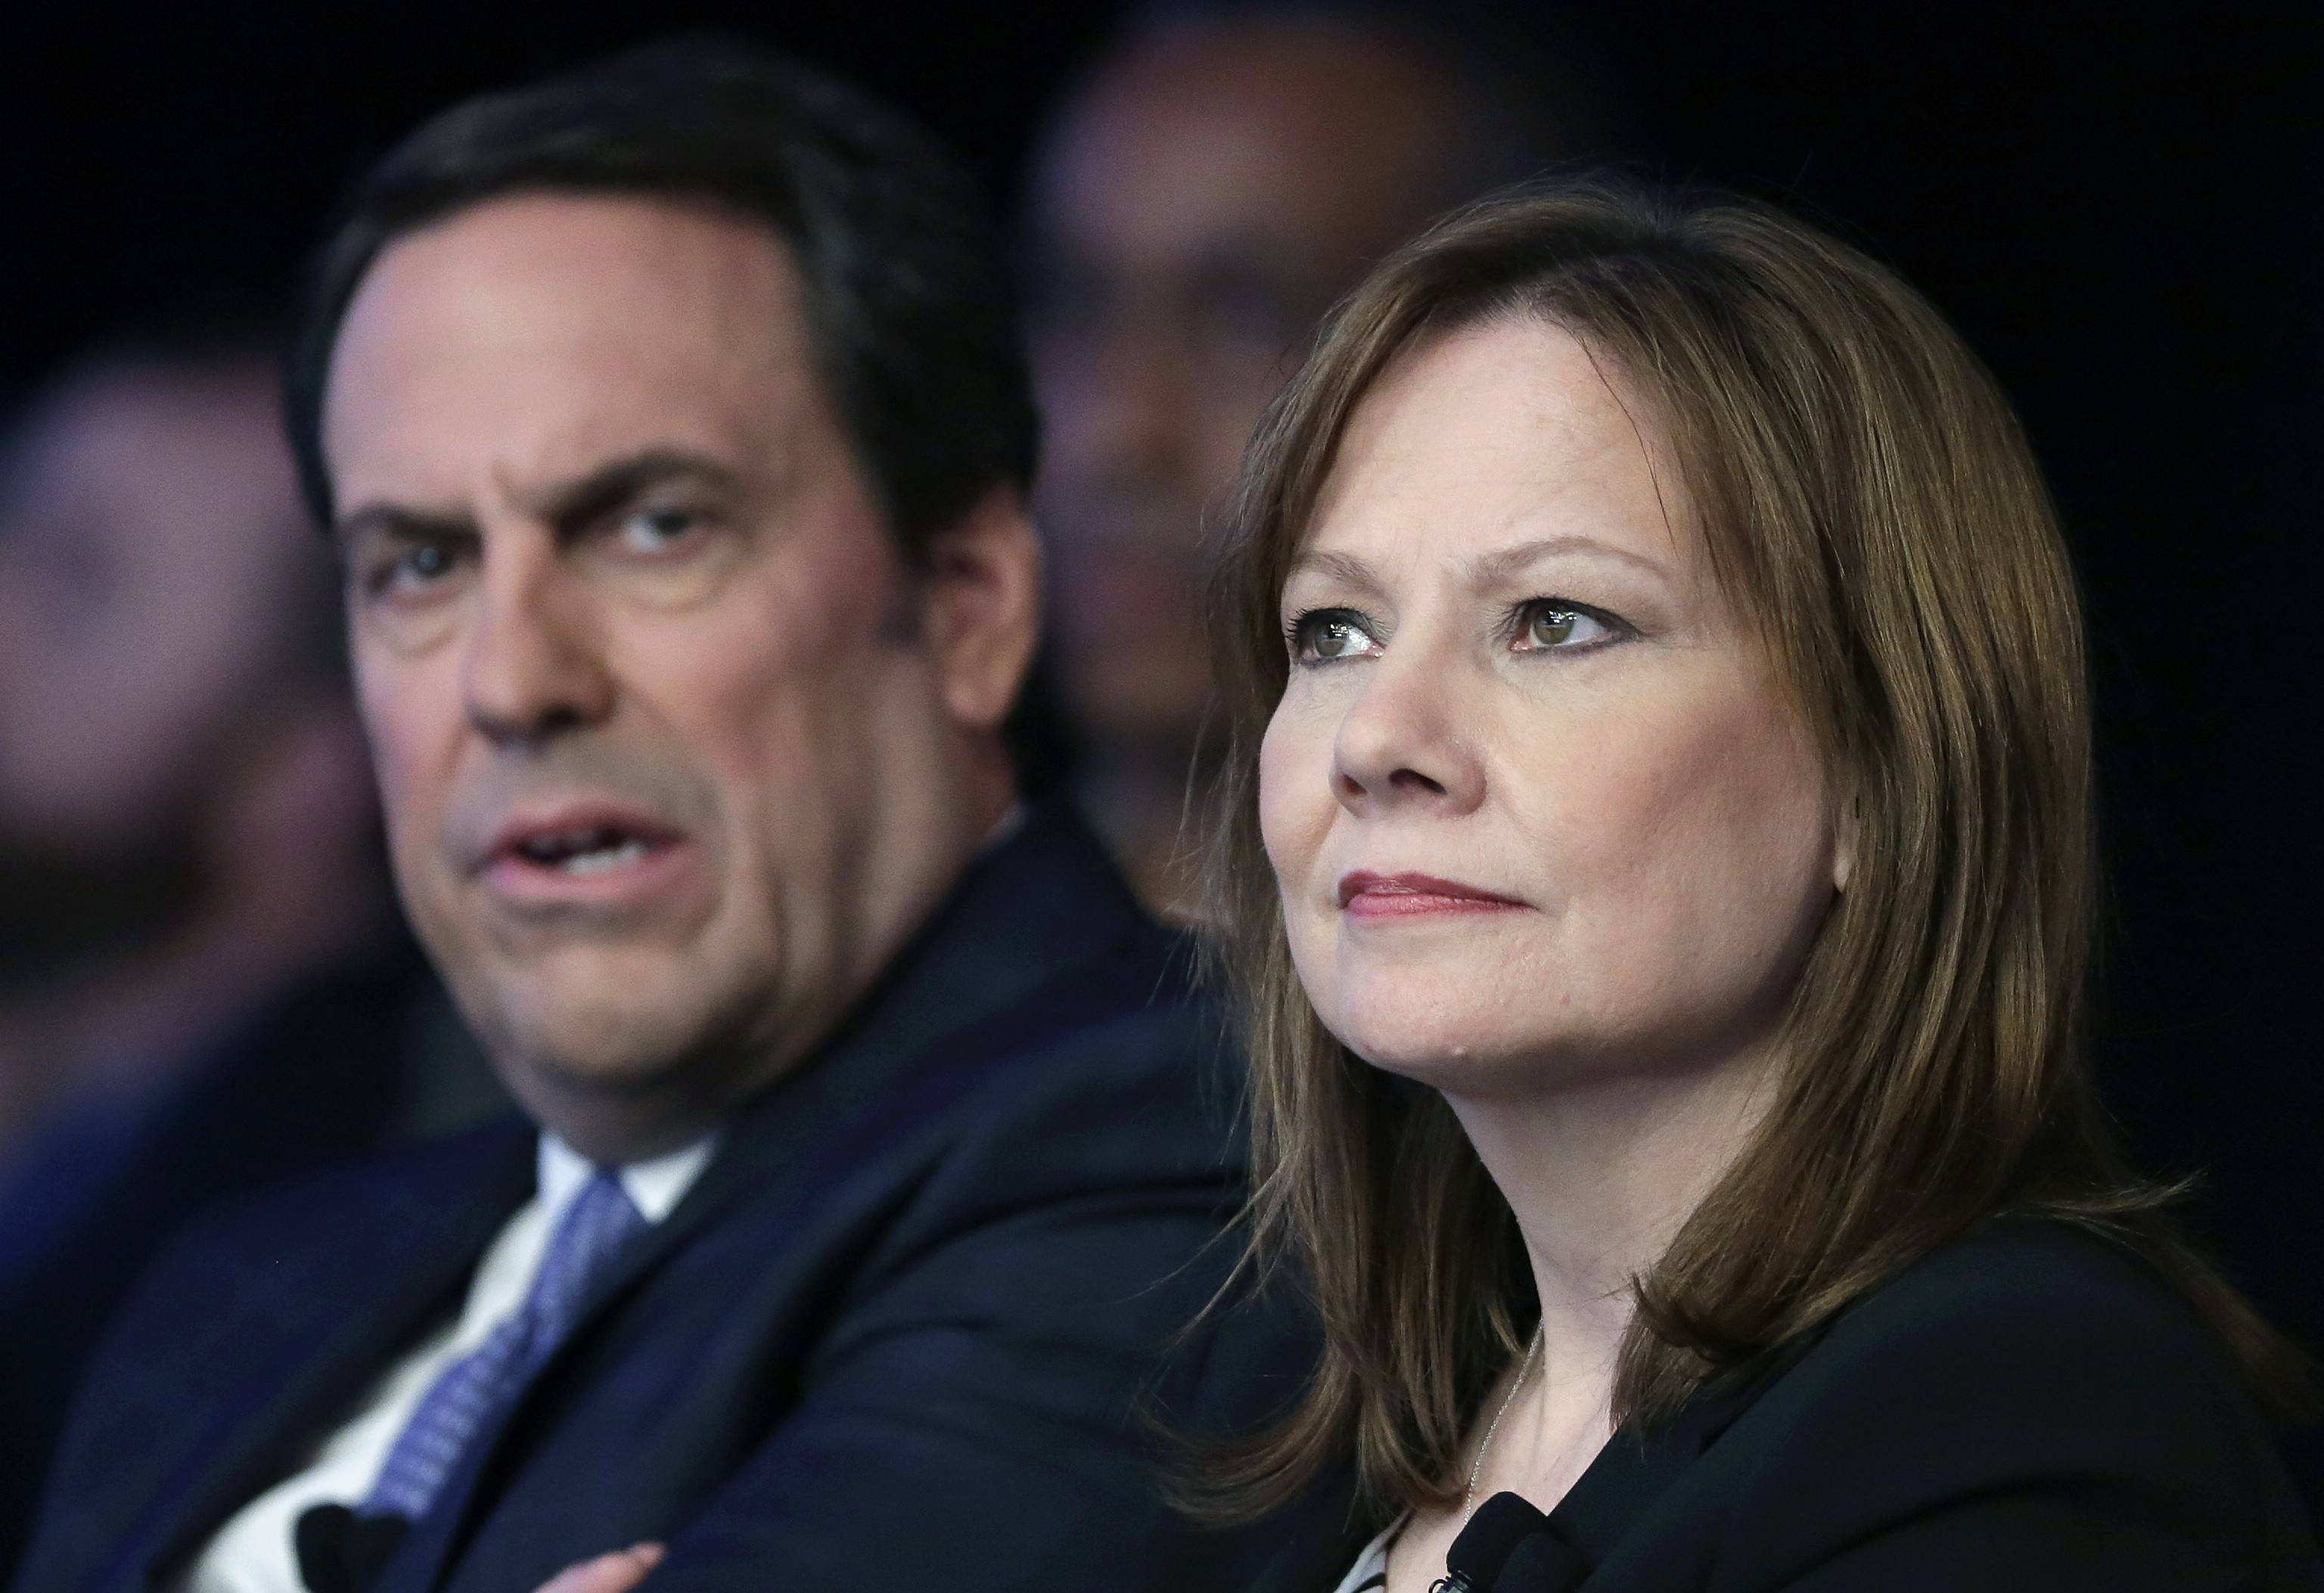 Mary Barra, CEO of General Motors, right, and Mark Reuss, executive vice president of Global Product Development for GM and President of GM America, watch the introduction of new Chevrolet cars at the New York International Auto Show April 15. GM's corporate structure -- as well as what Barra has called a culture that valued cost-savings over safety -- will likely be a prime target in a report expected this week from former U.S. Attorney Anton Valukas.